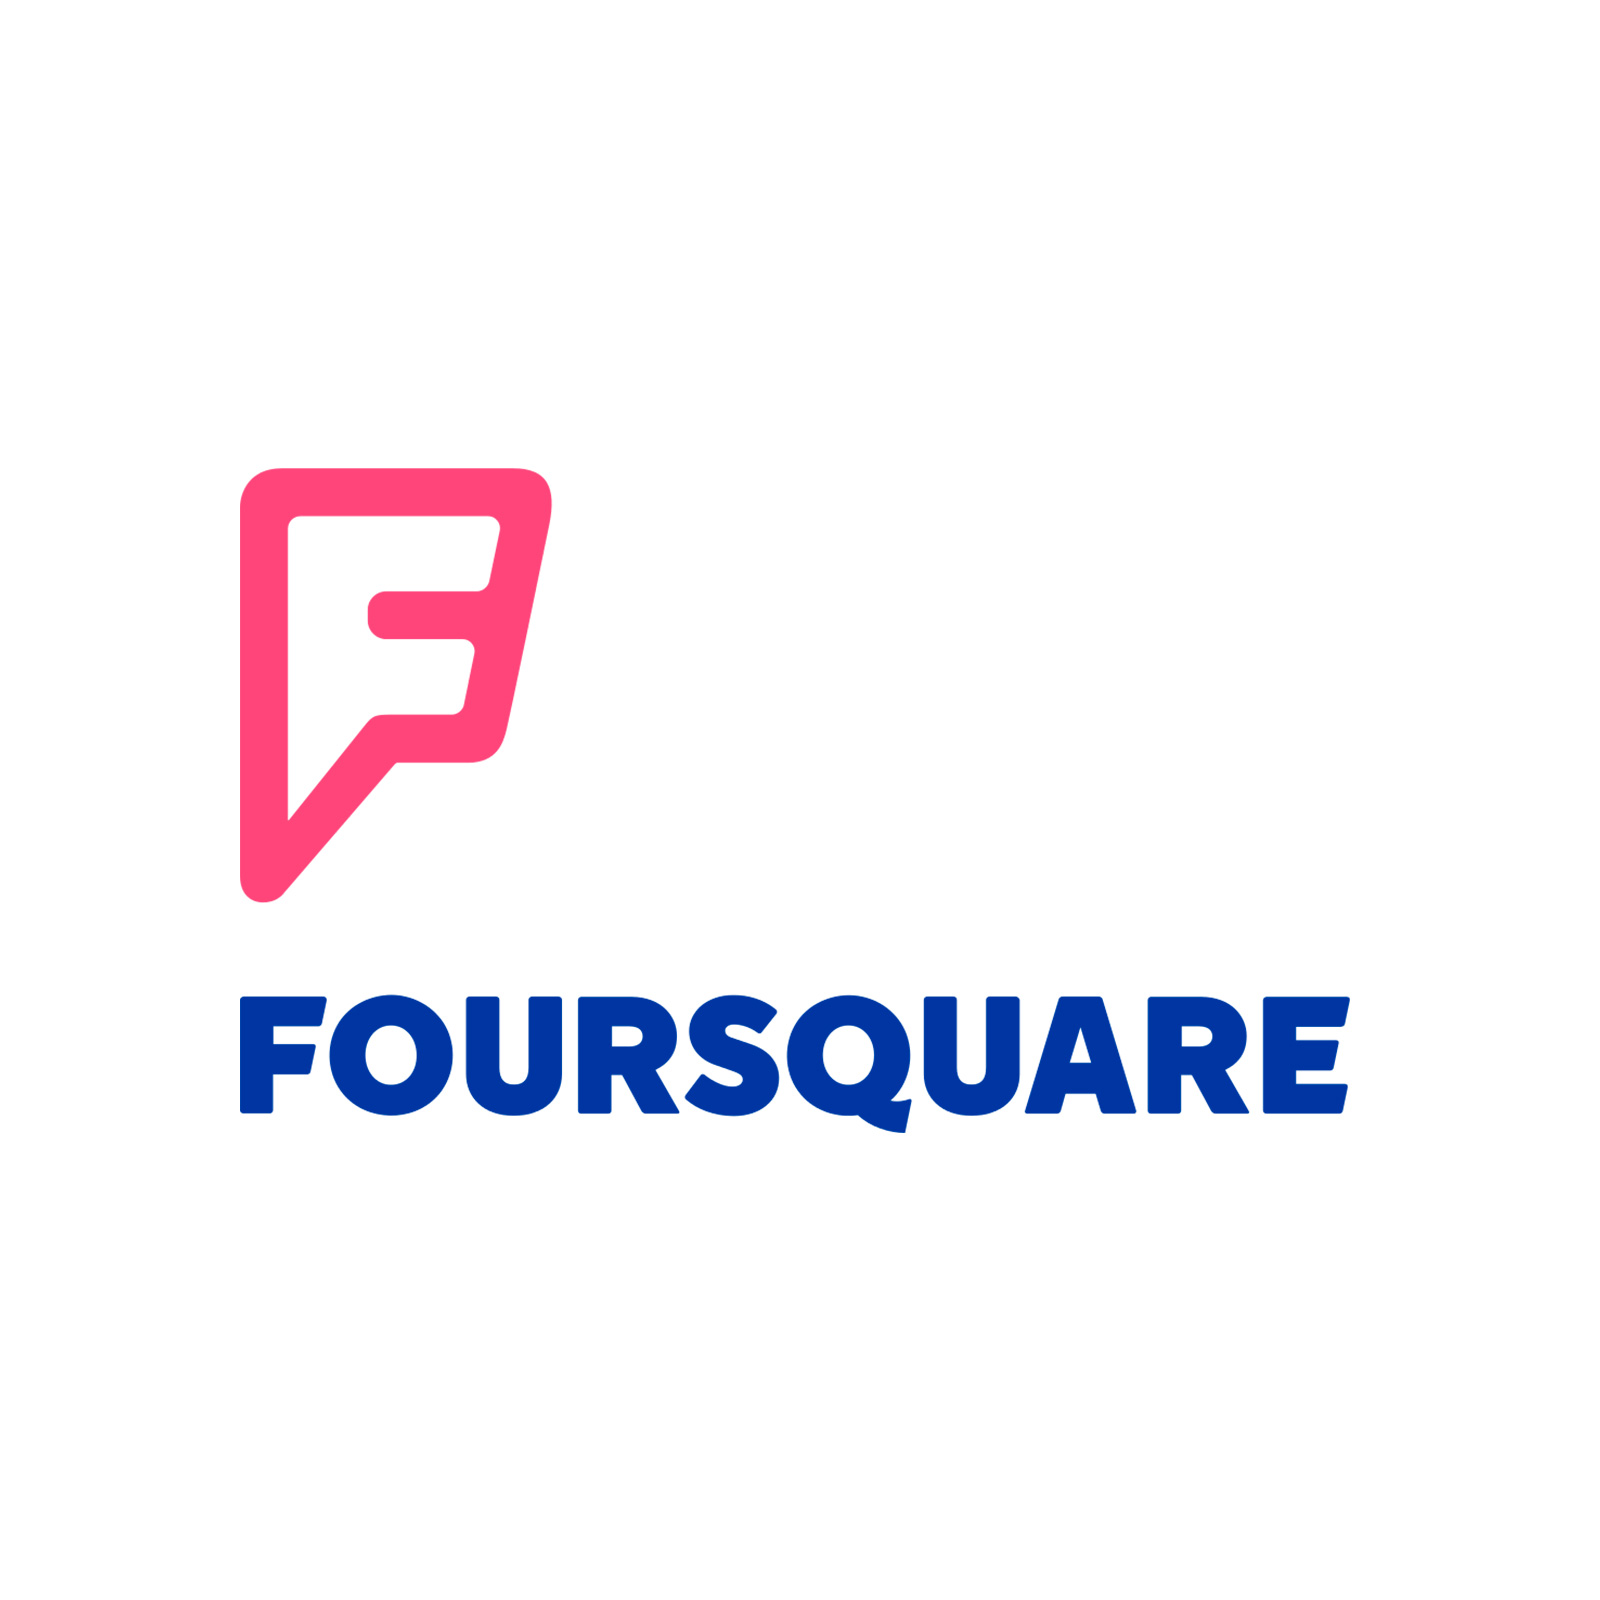 Foursquare is a local search-and-discovery service mobile app which provides search results for its users.